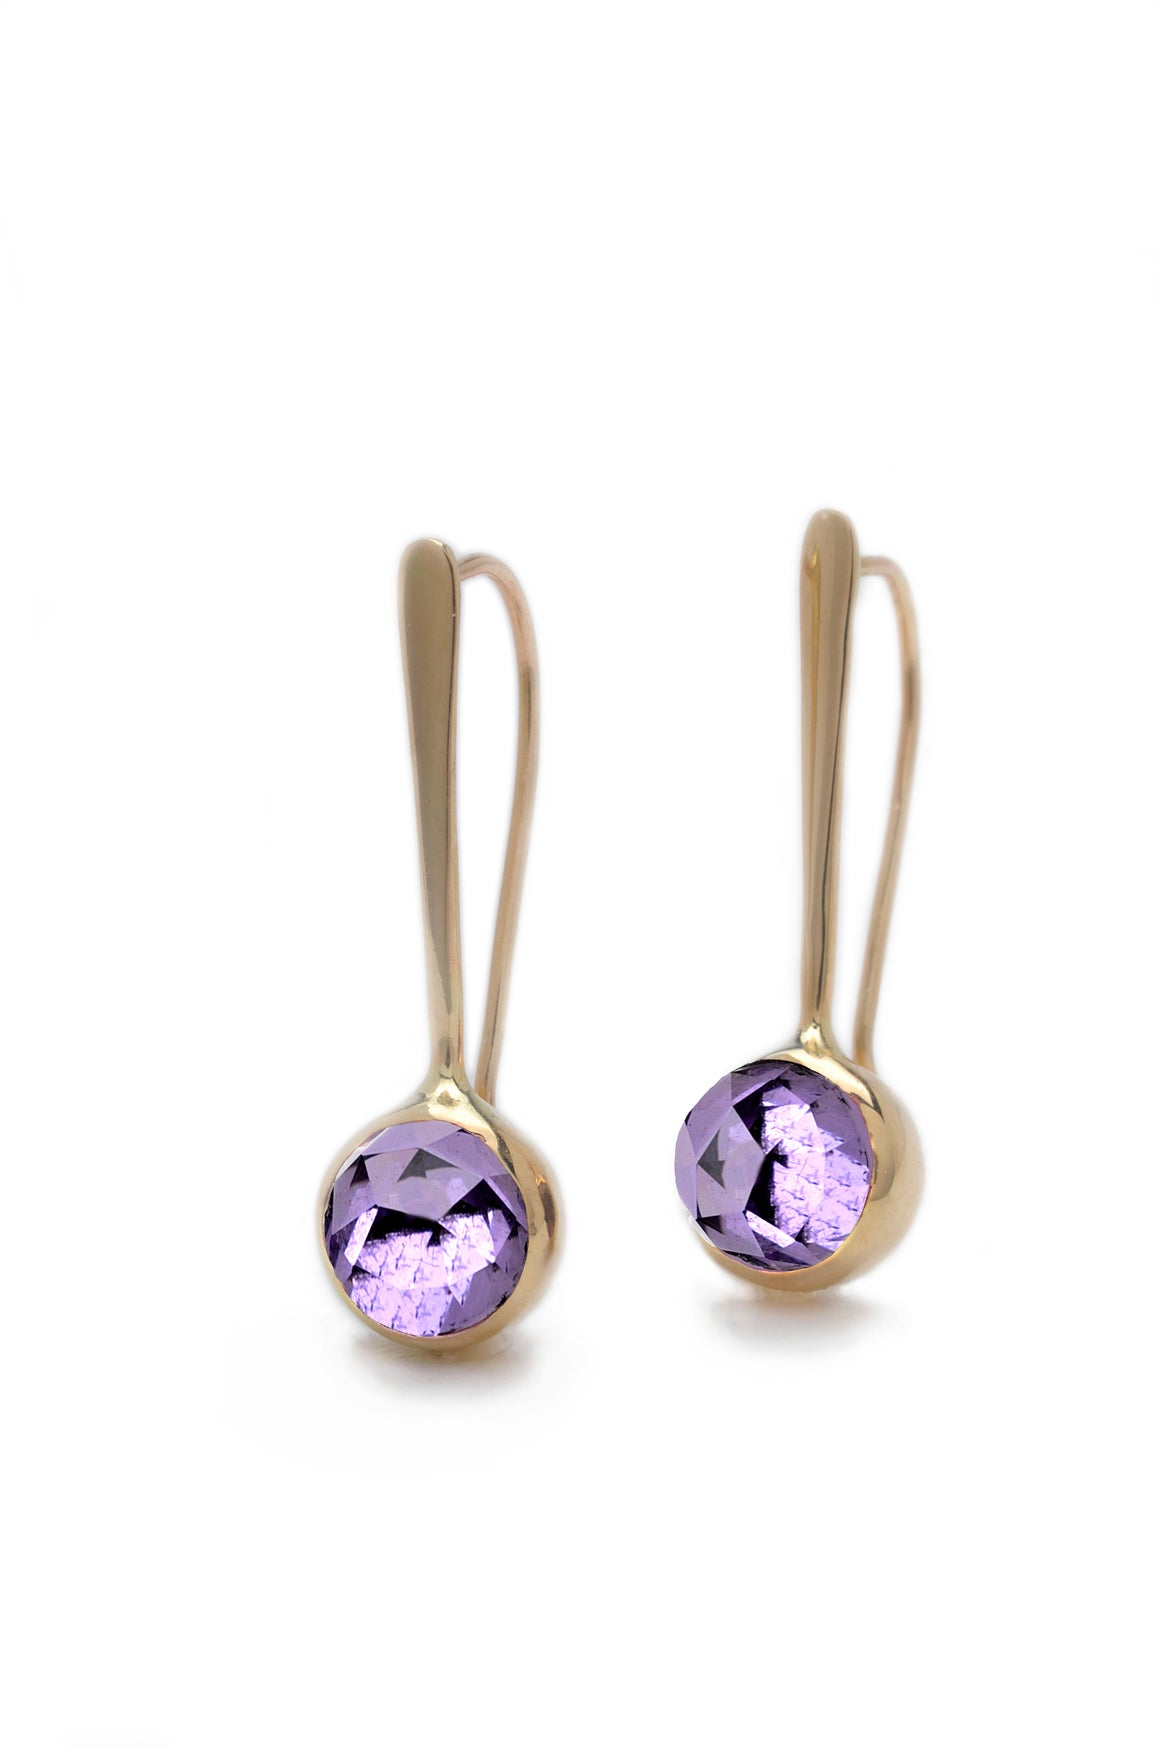 14k Forged Drop Earrings With Rose Cut Amethyst